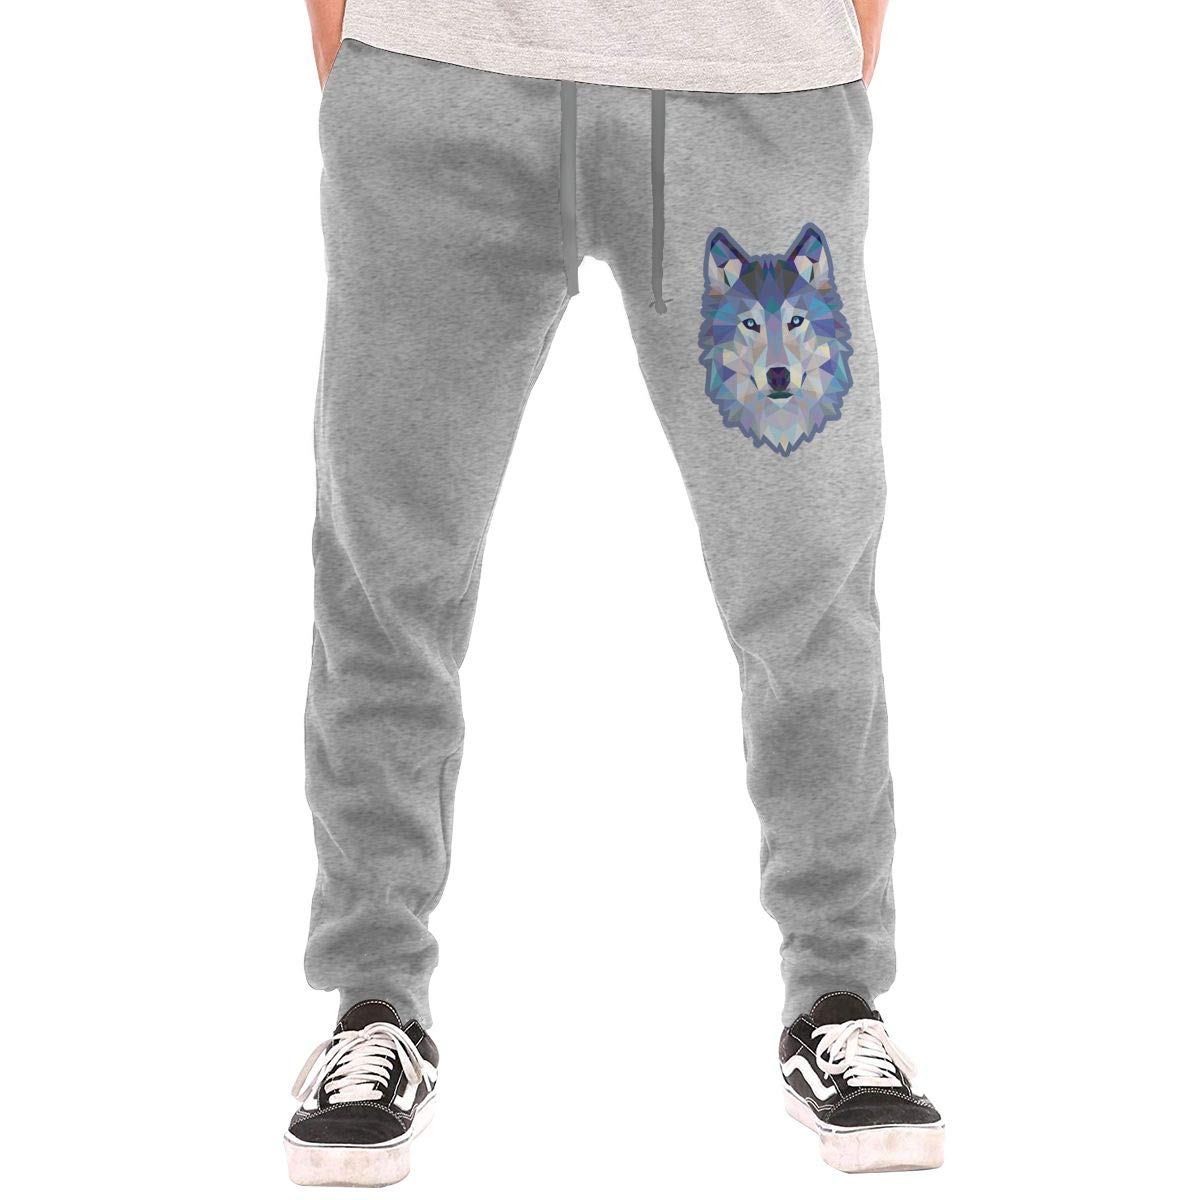 Blue Wolf Printed Drawstring Waist,100/% Cotton,Elastic Waist Cuffed,Jogger Sweatpants